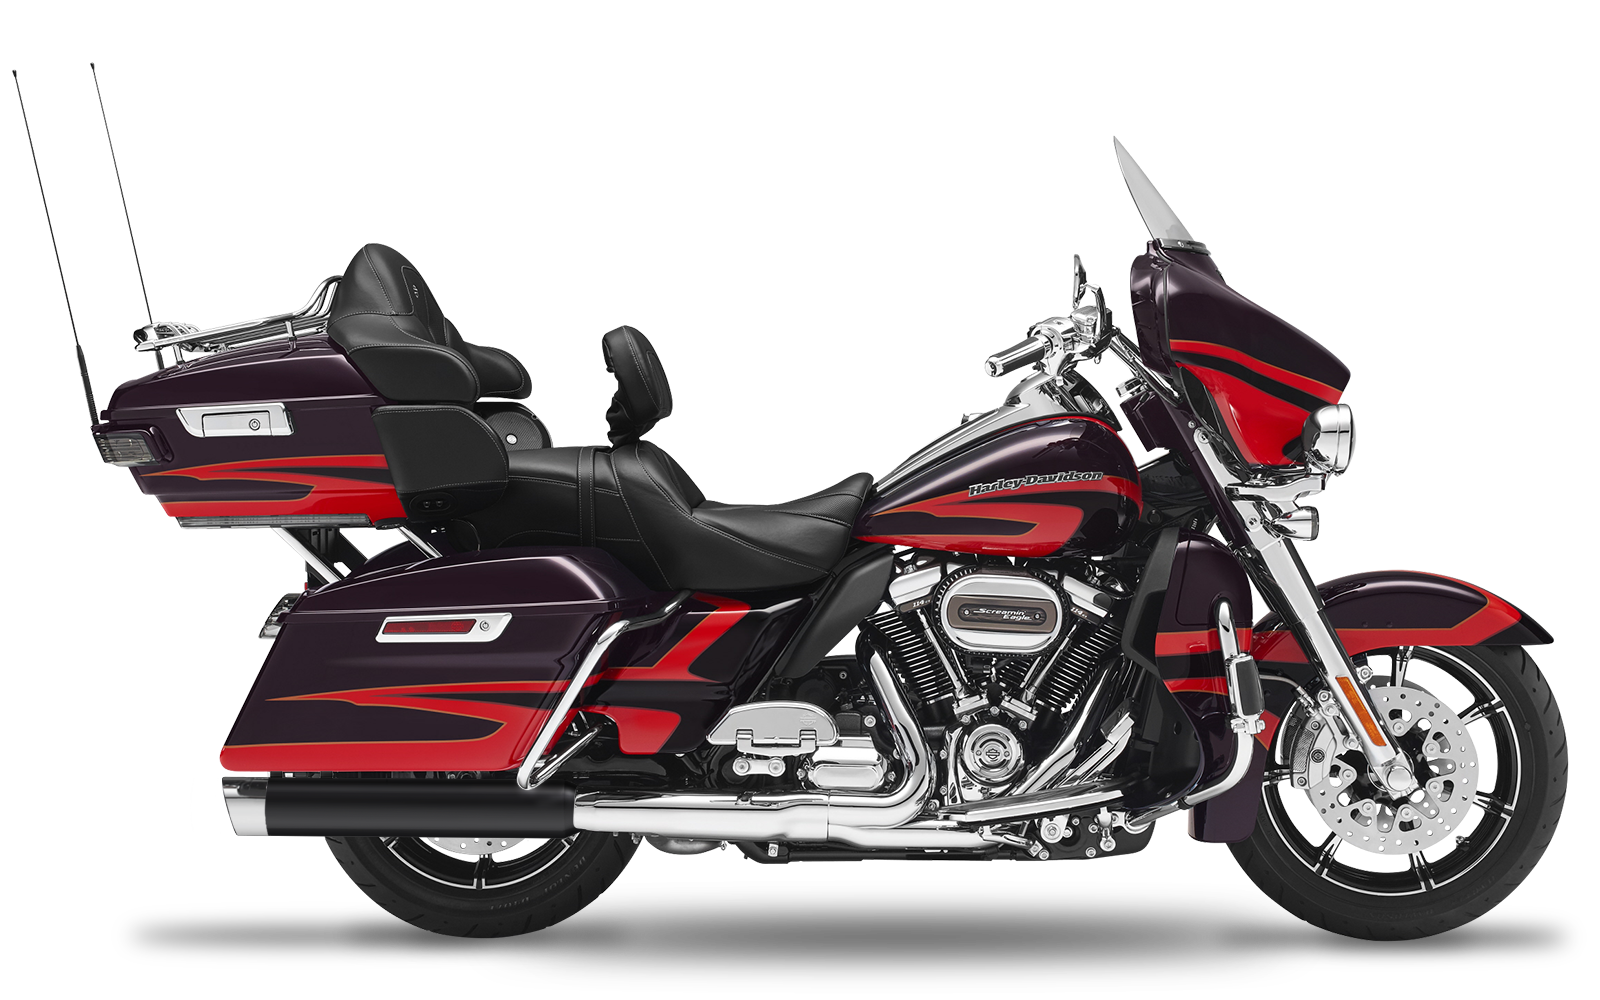 Touring - Road Glide Limited - ME114 - 2020 - Slipons